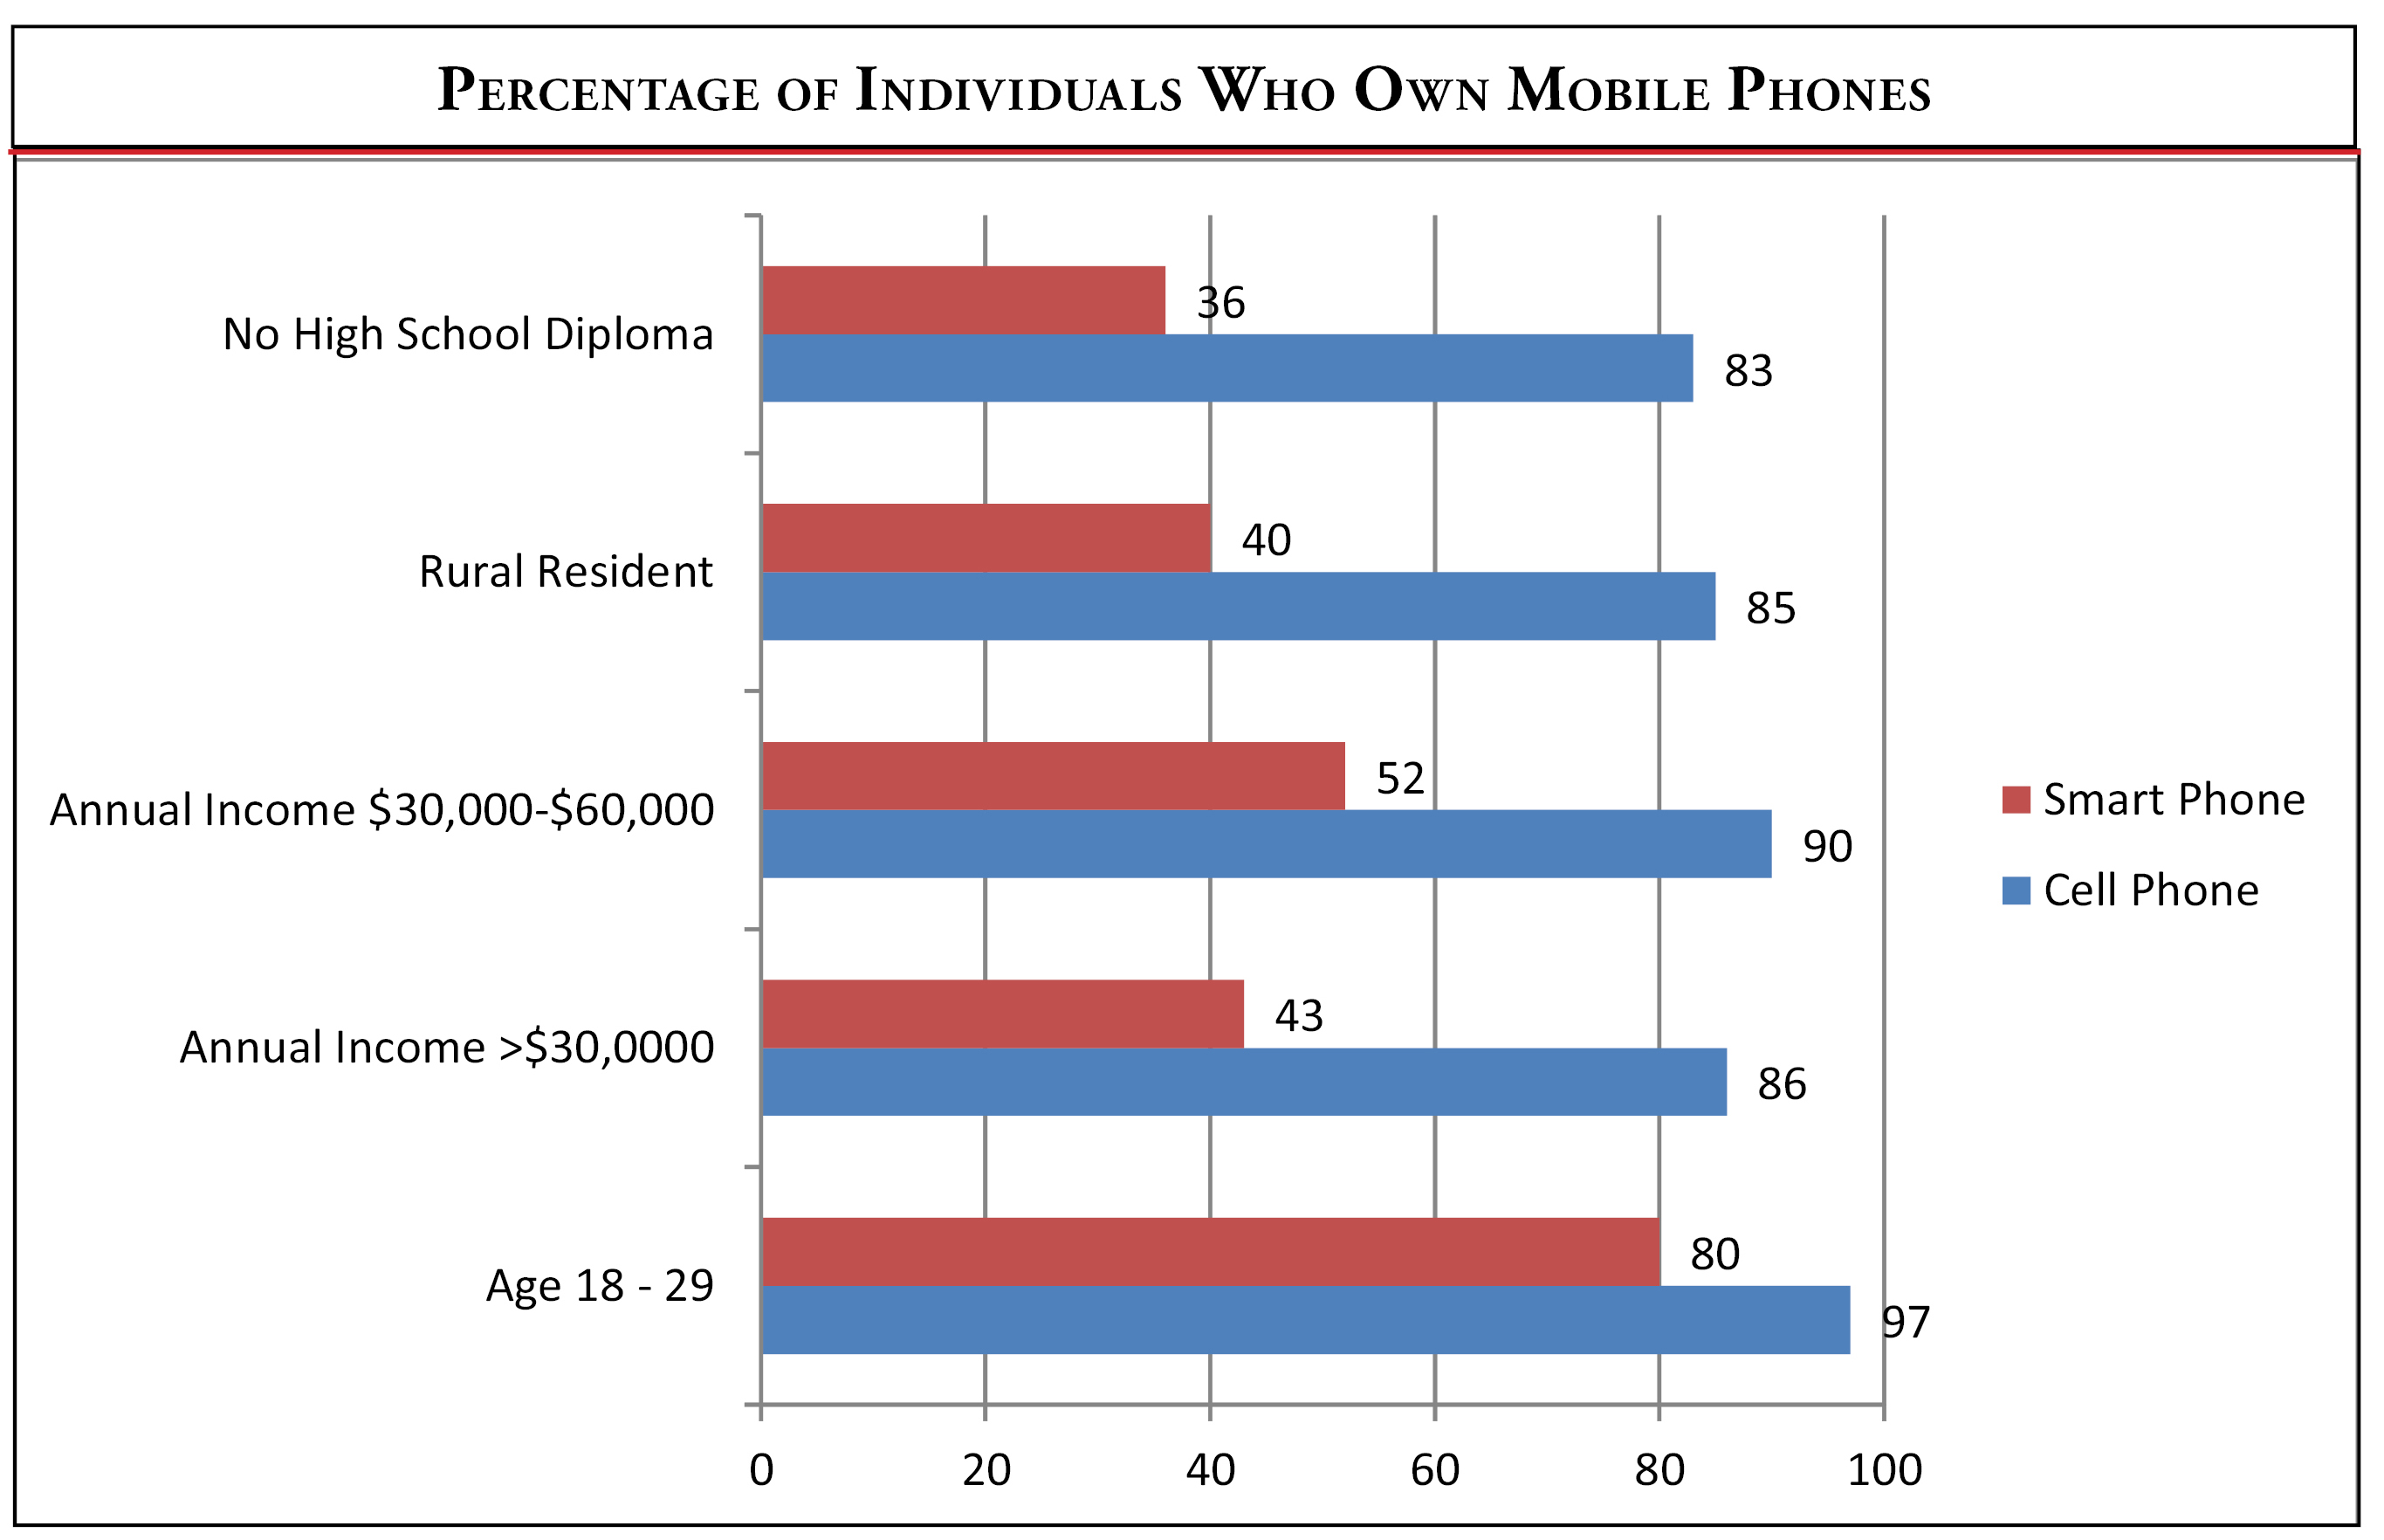 Percentage who own mobile phones (Reforming Medicaid)